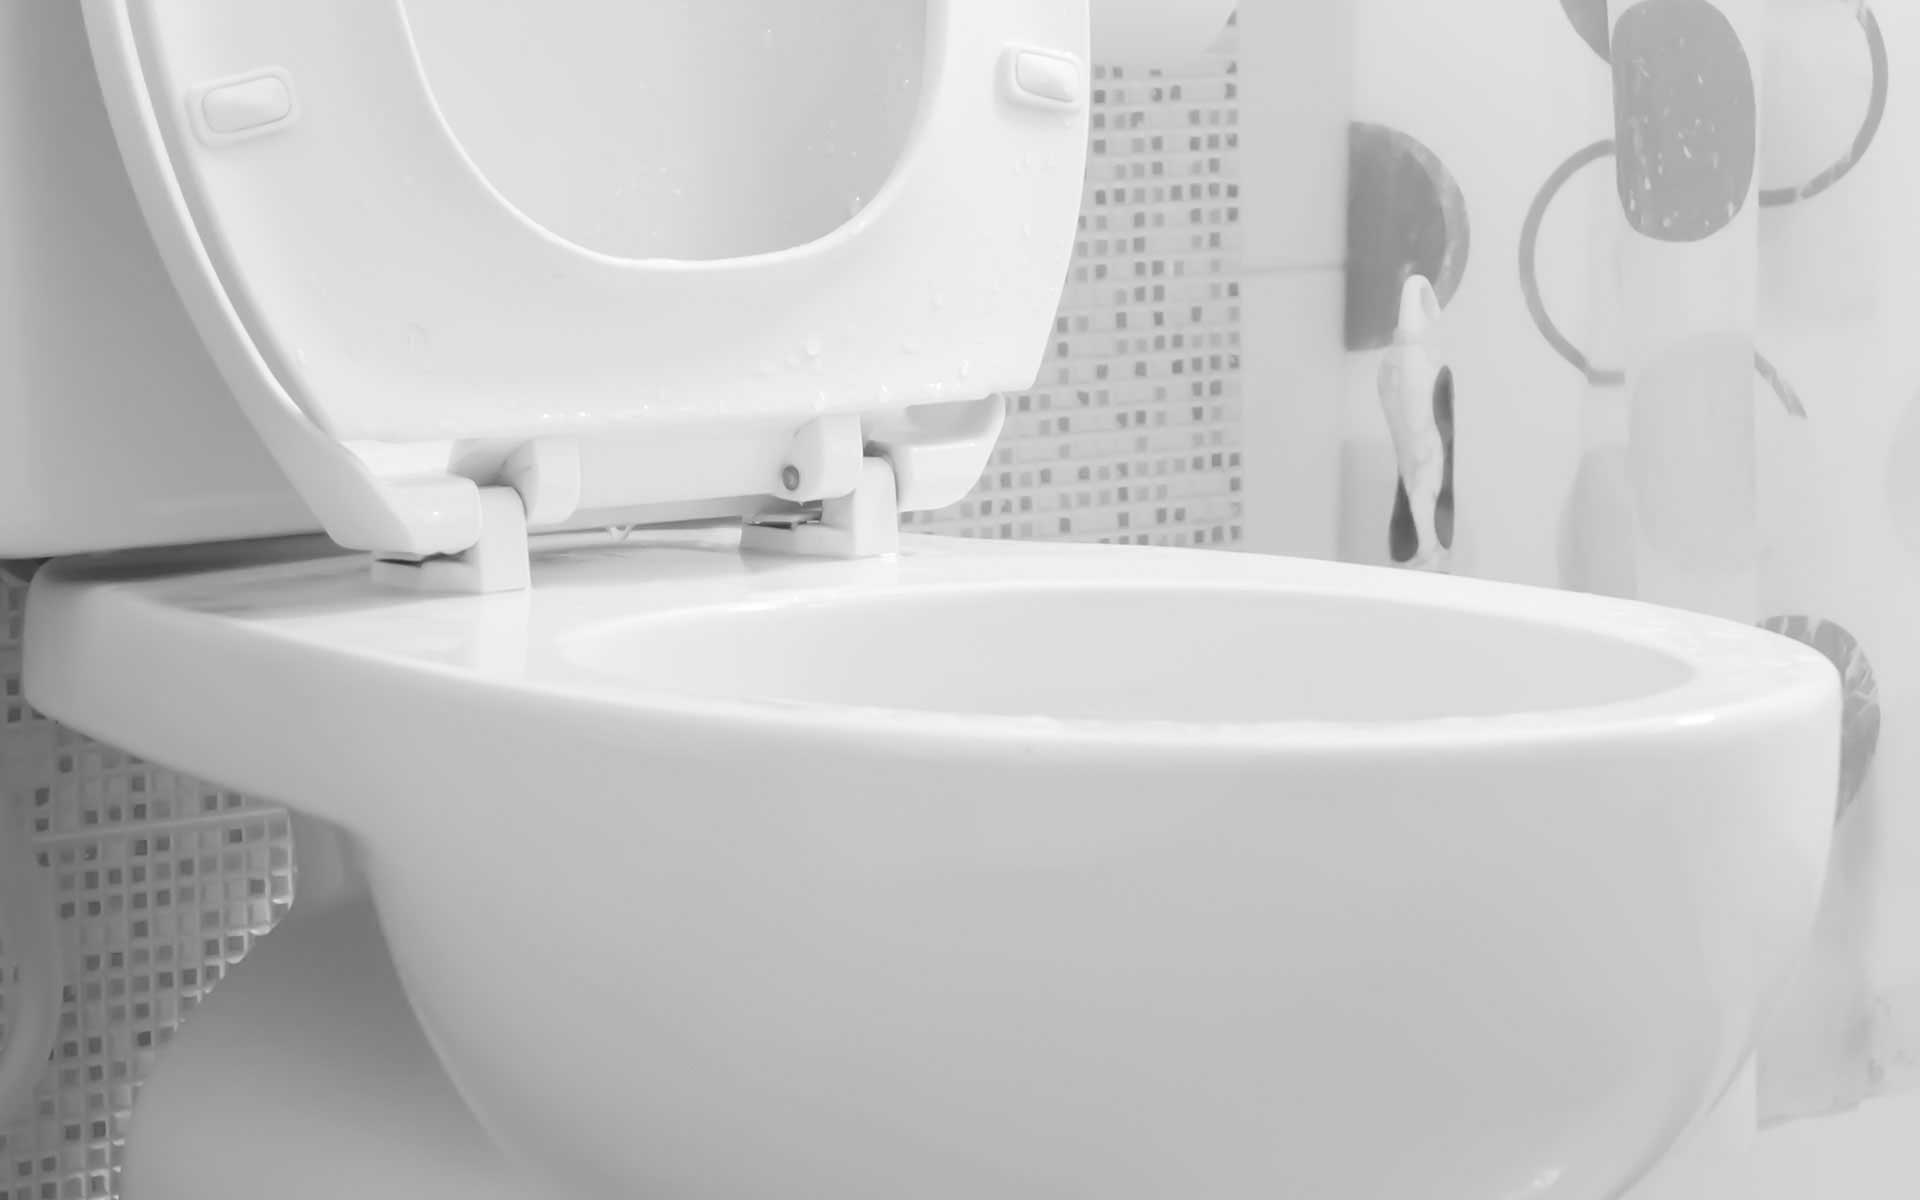 Gaithersburg Toilet Repair